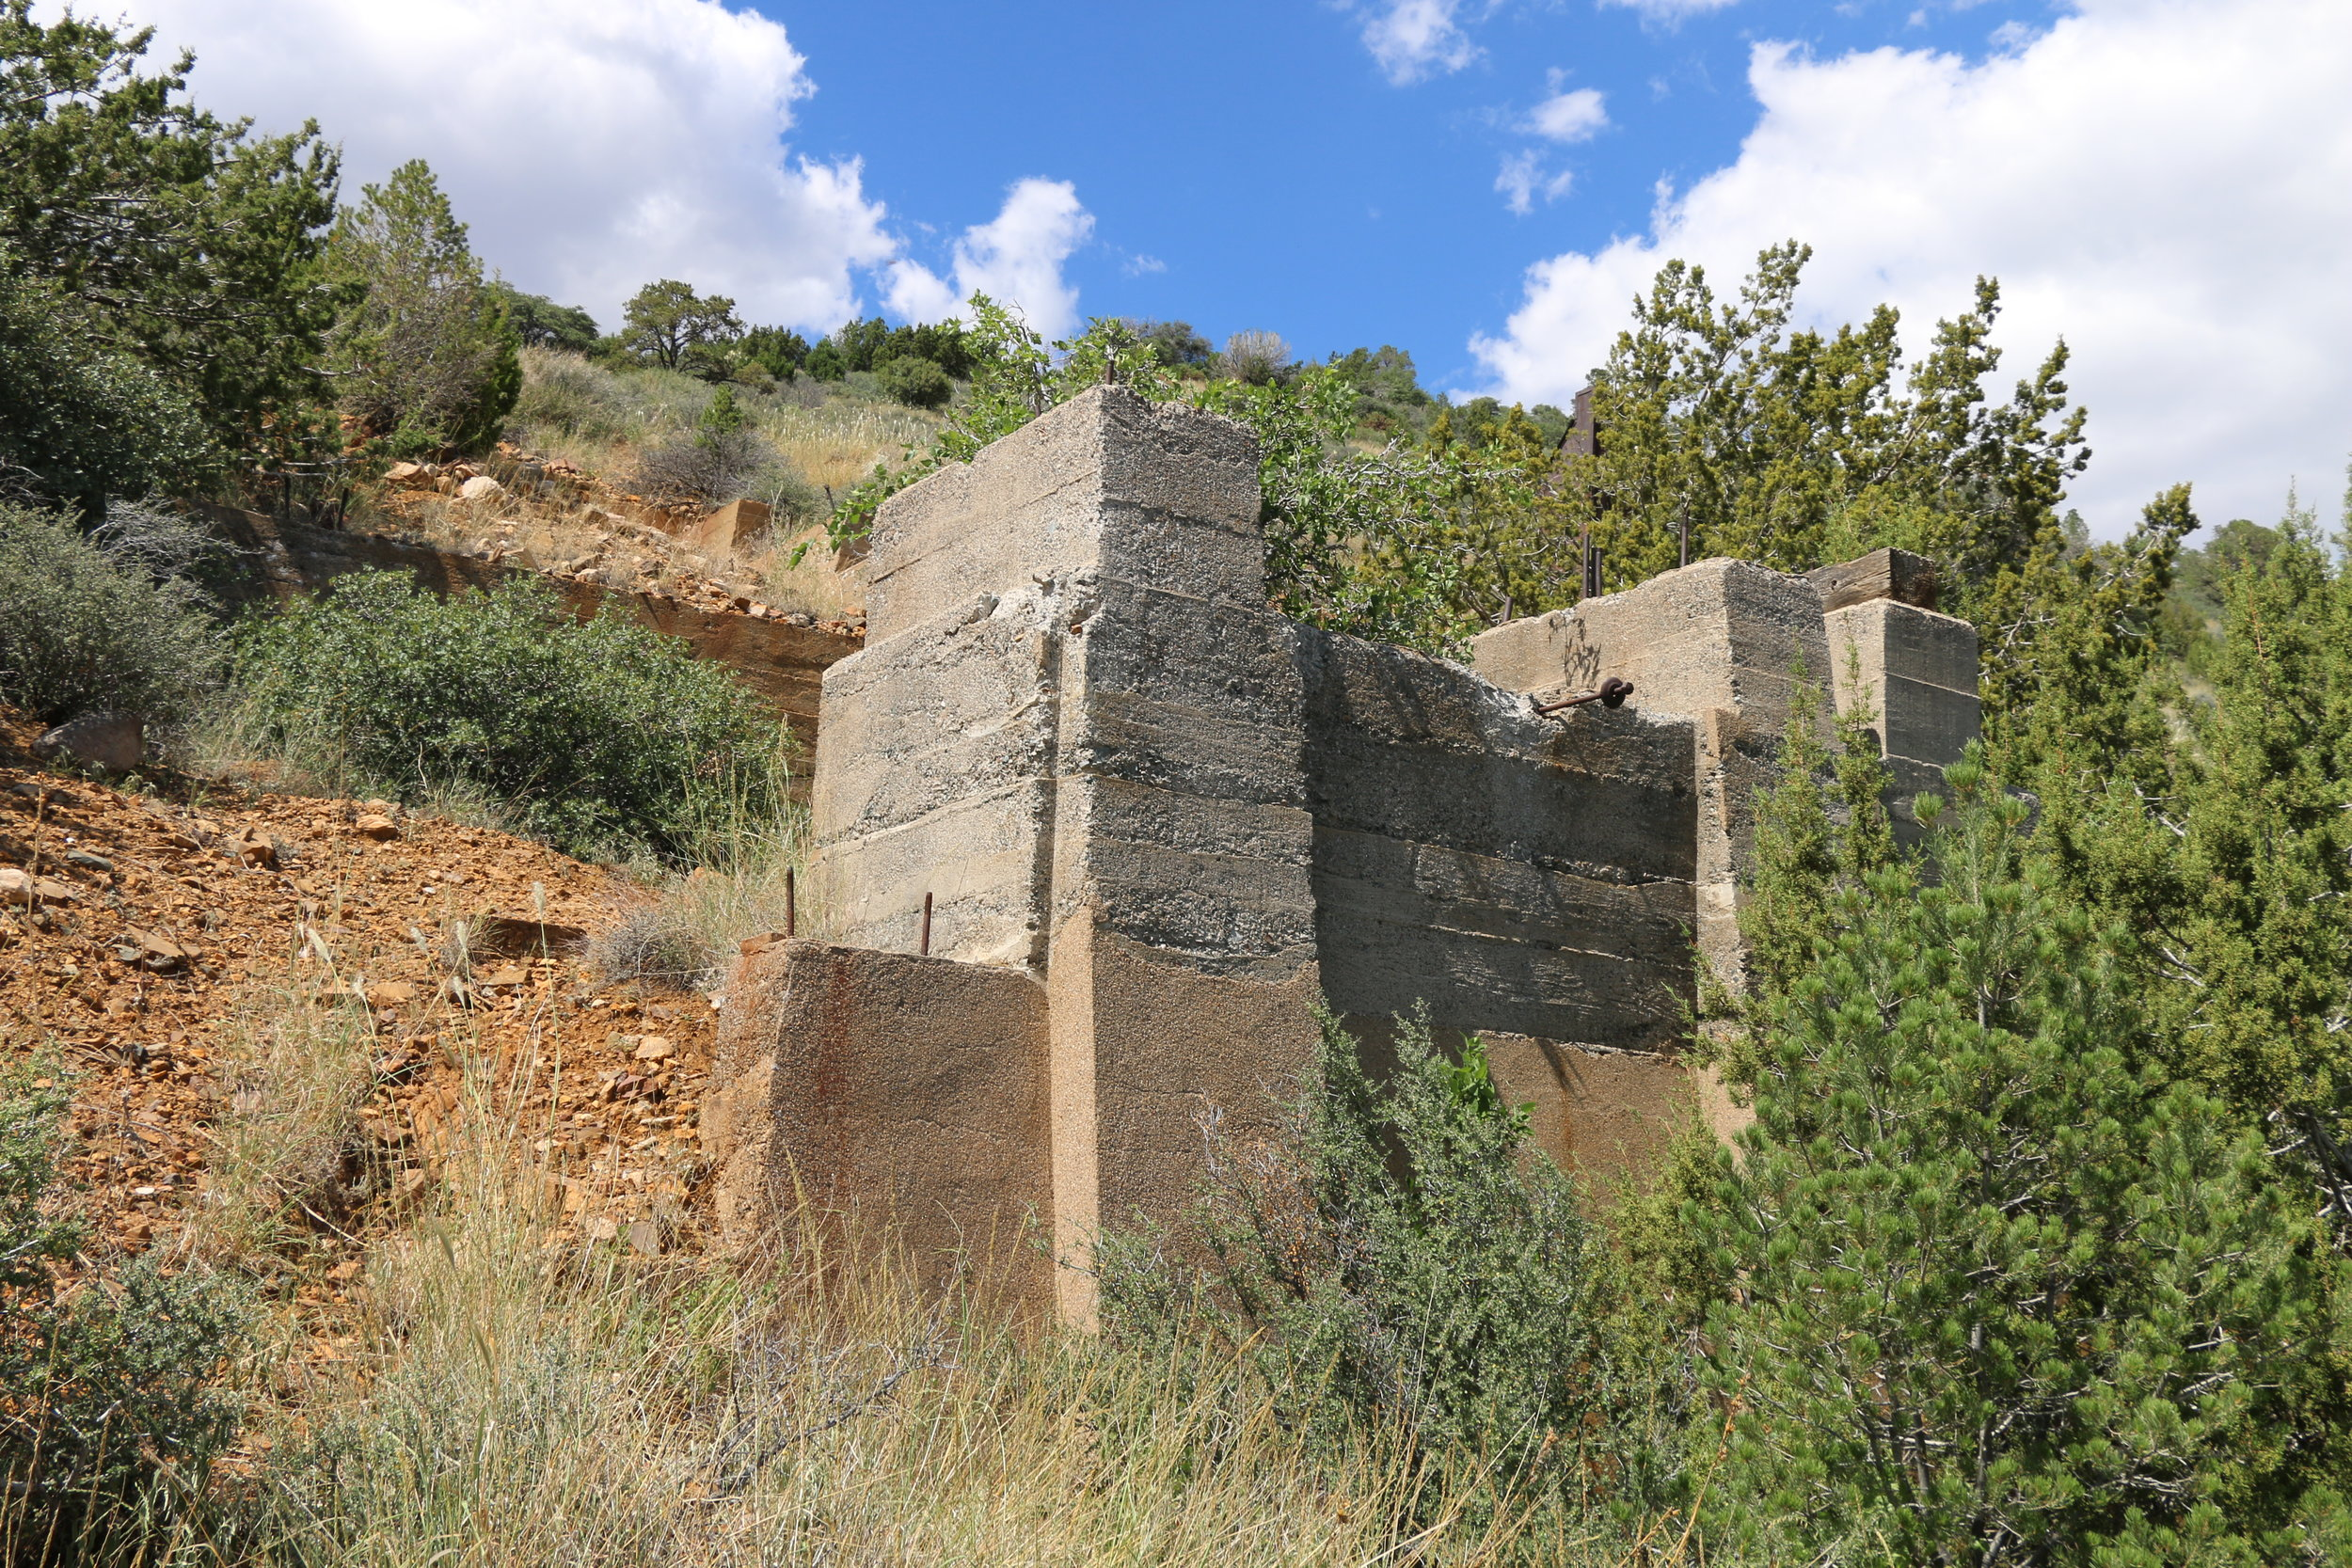 Cement foundations remain on hillside.